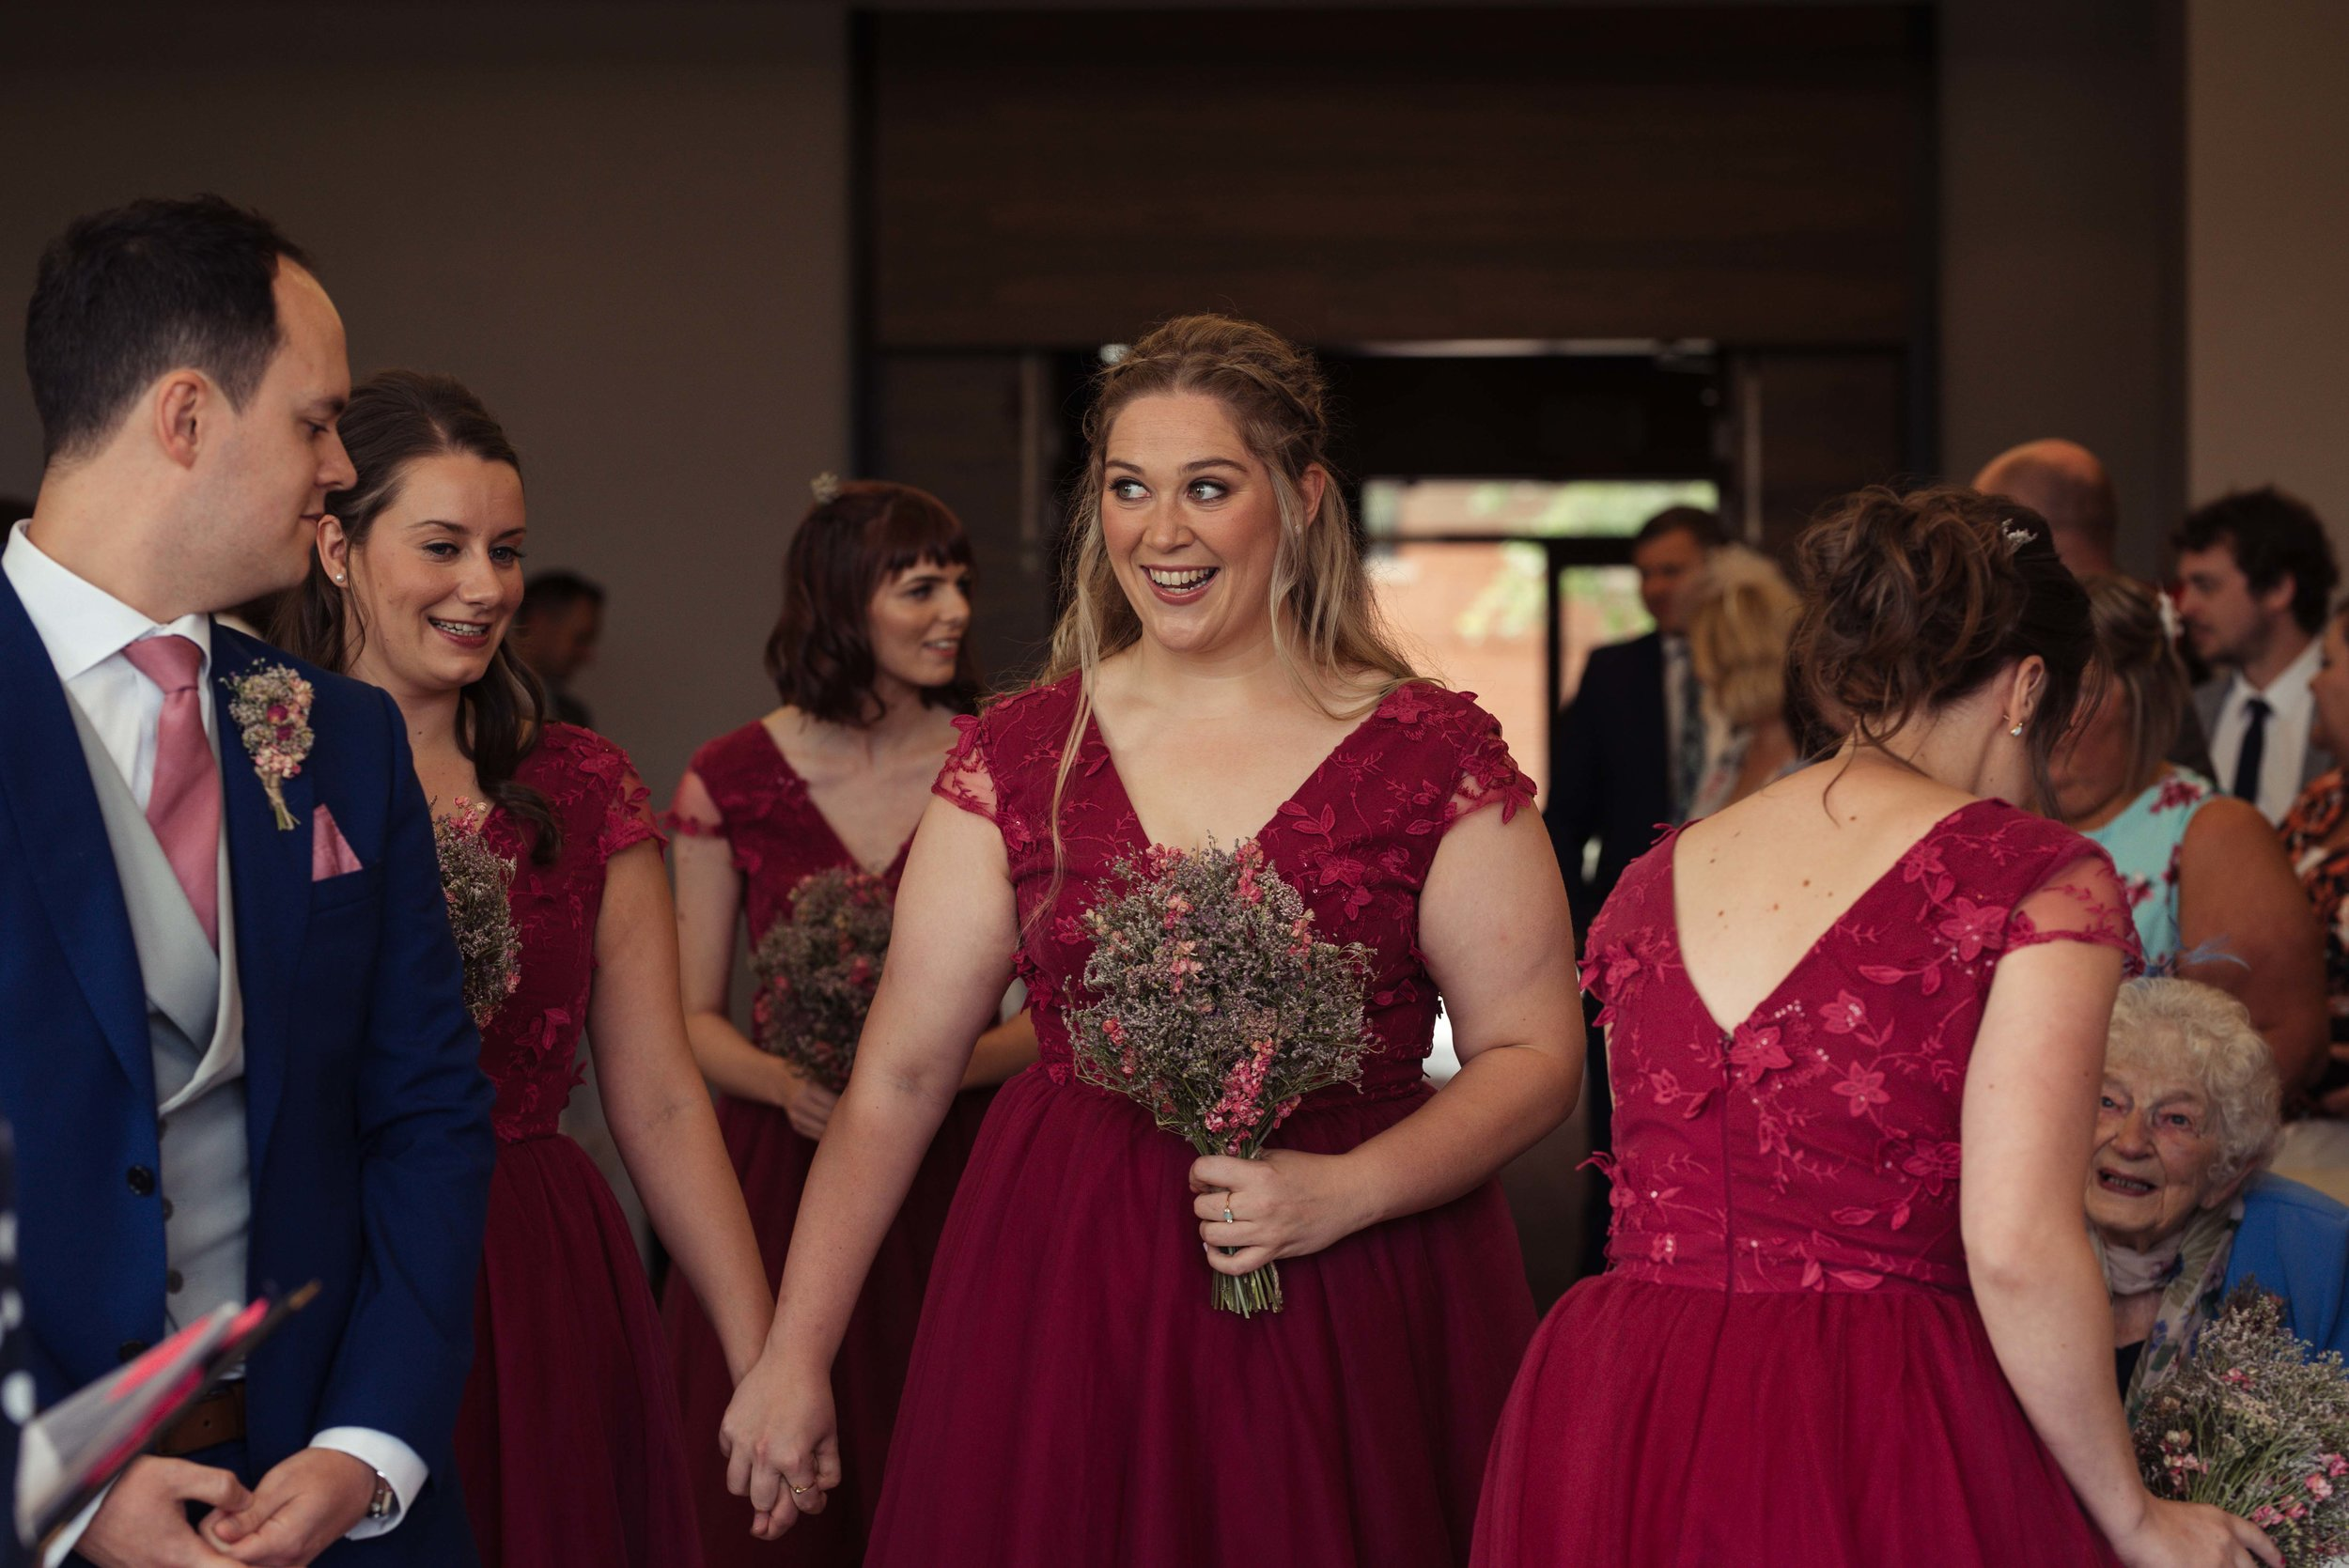 A happy bridesmaid walking up the aisle at the start of the wedding ceremony